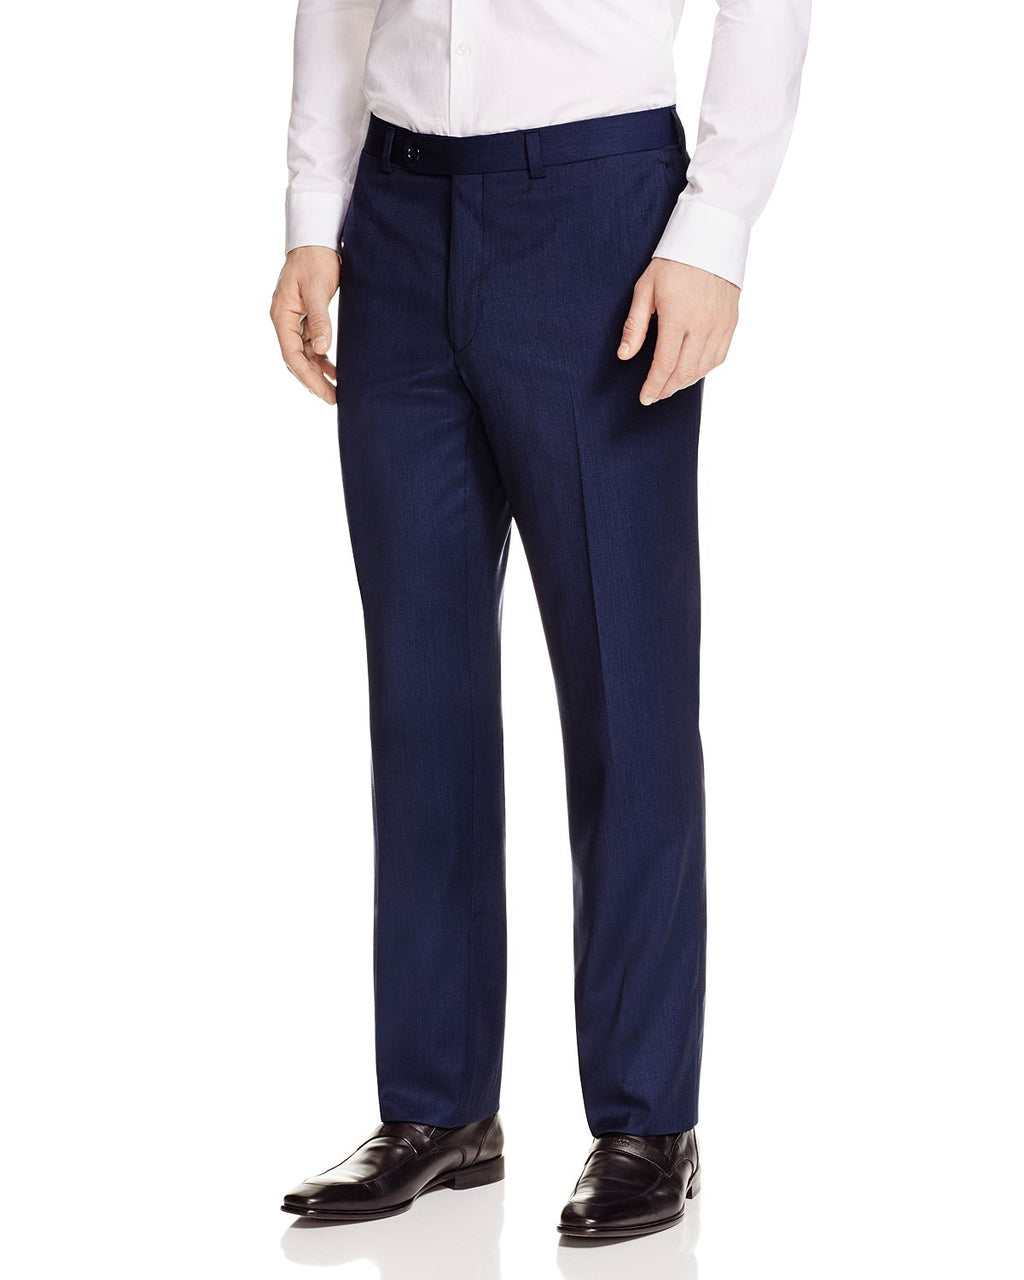 KOLT • High Blue • Modern Fit Trouser • Loro Piana